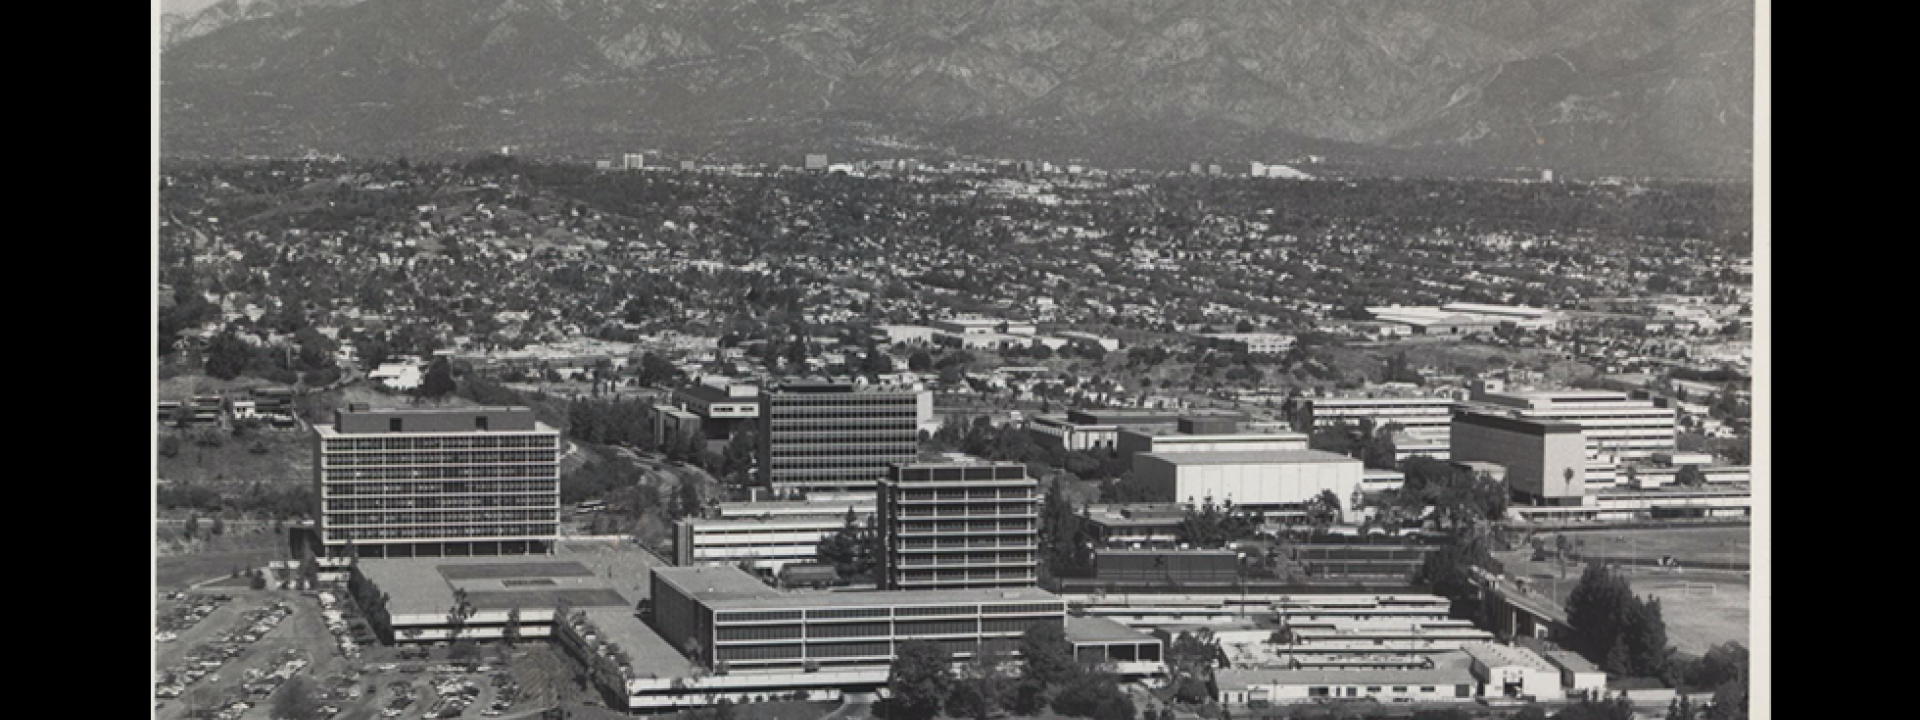 Birdseye view of Cal State LA in the 1970s